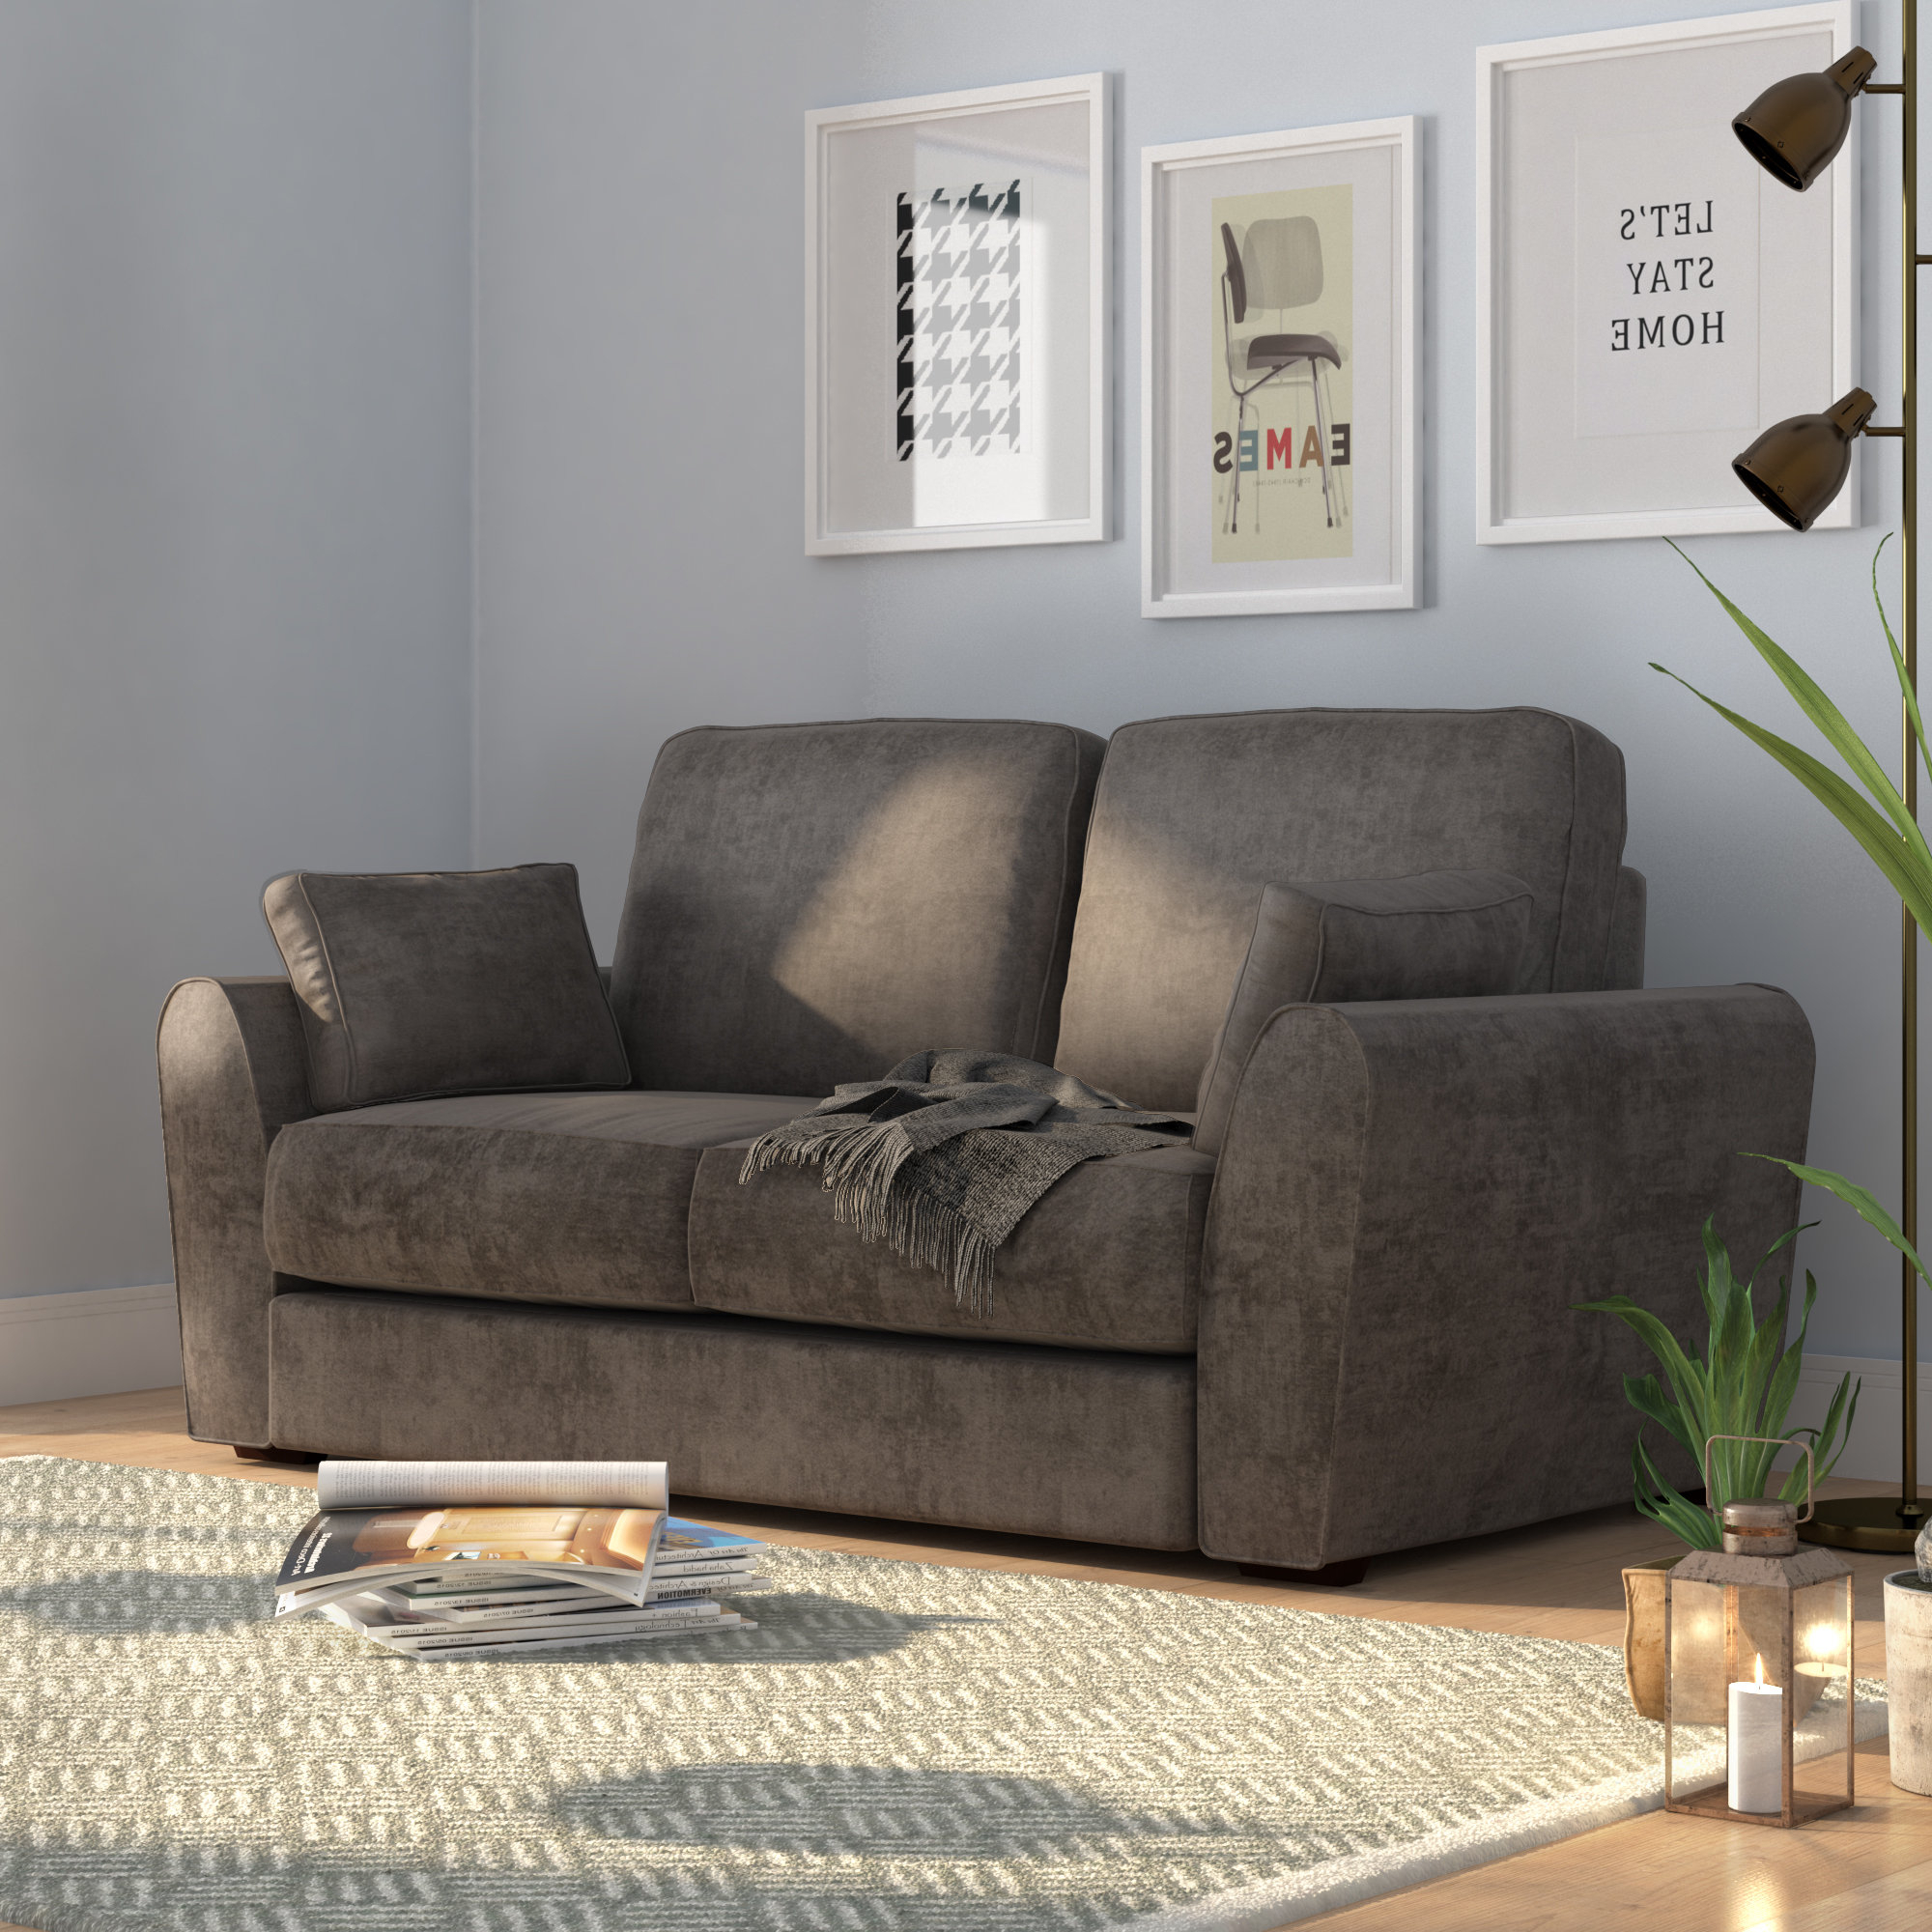 Wayfair.co.uk Pertaining To Ames Arm Sofa Chairs (Gallery 17 of 20)